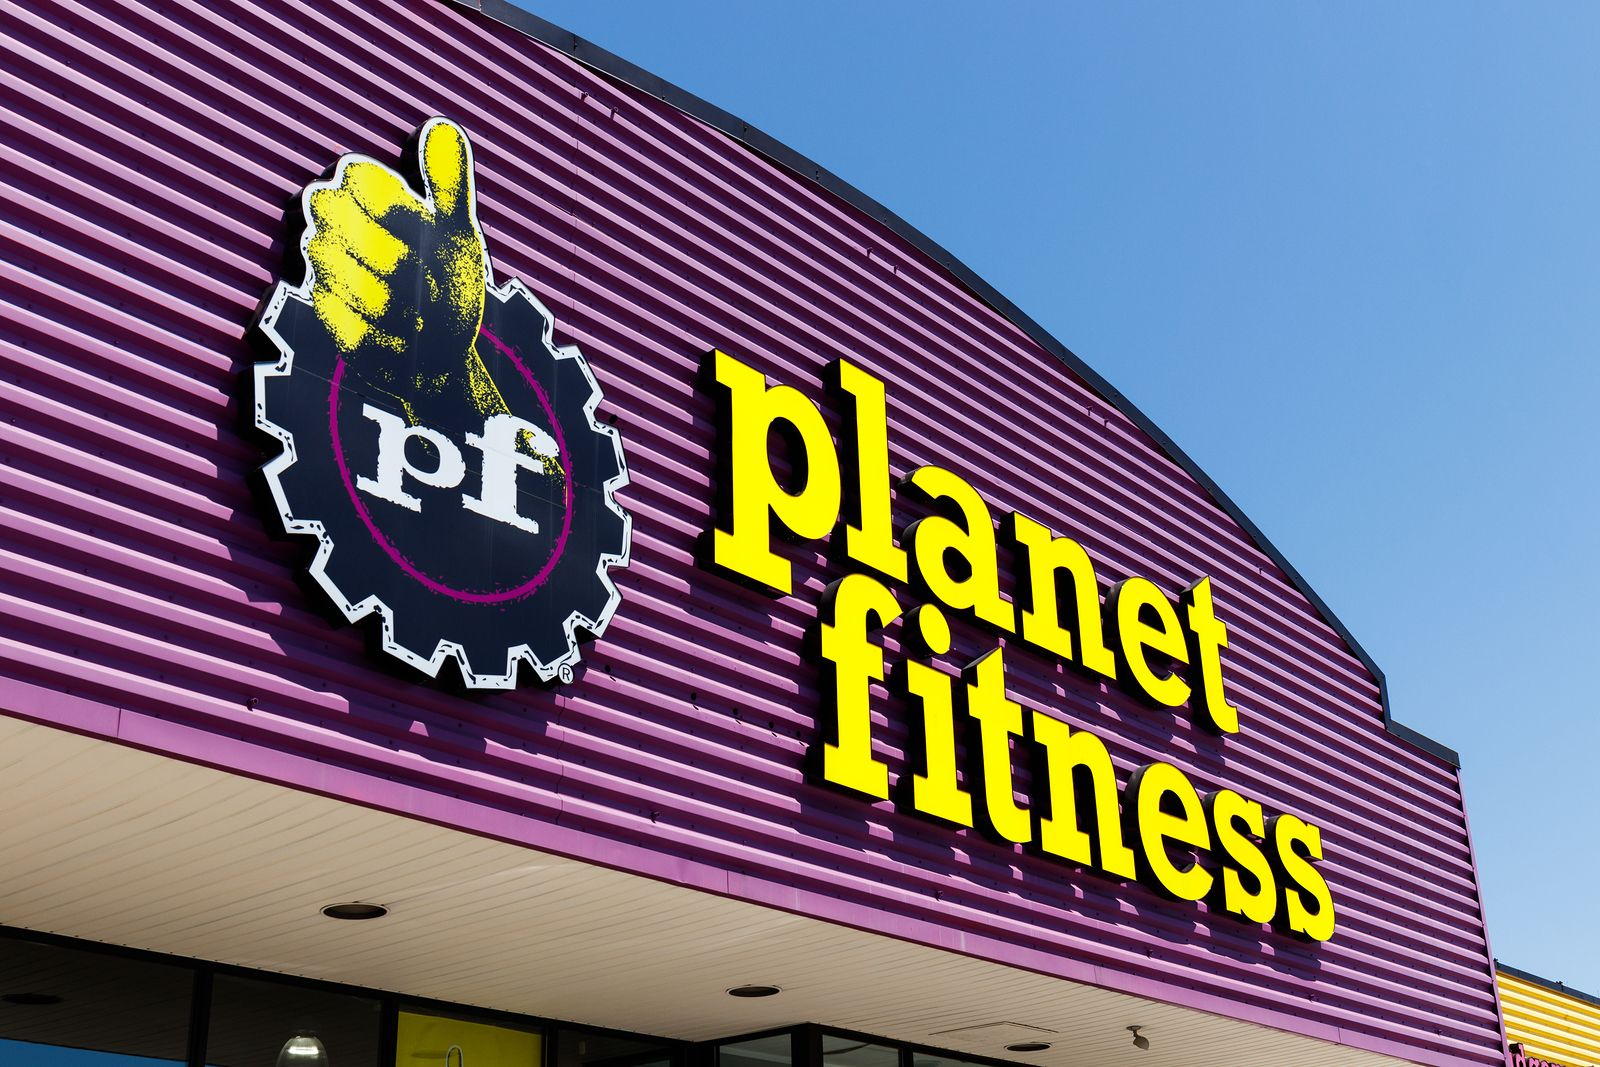 Planet Fitness Australia launch unveiled | Inside Franchise Business